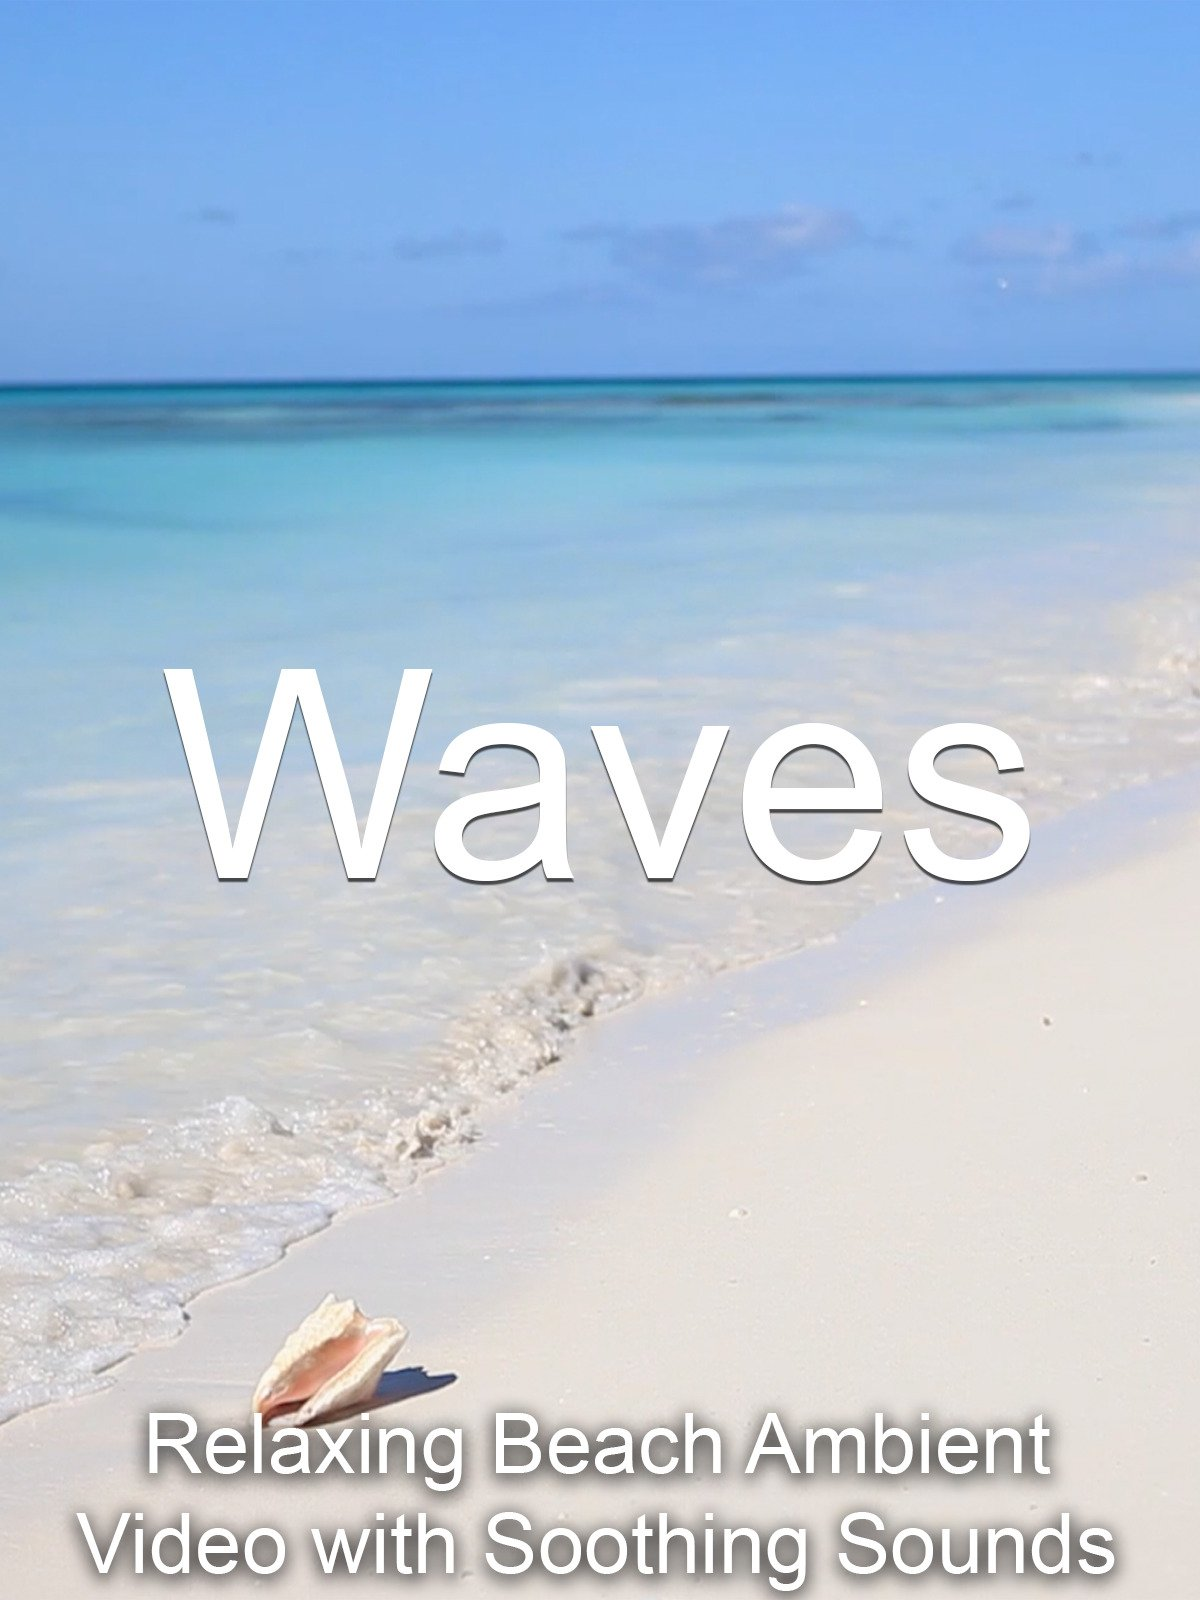 Waves Relaxing Beach Ambient Video with Soothing Sounds